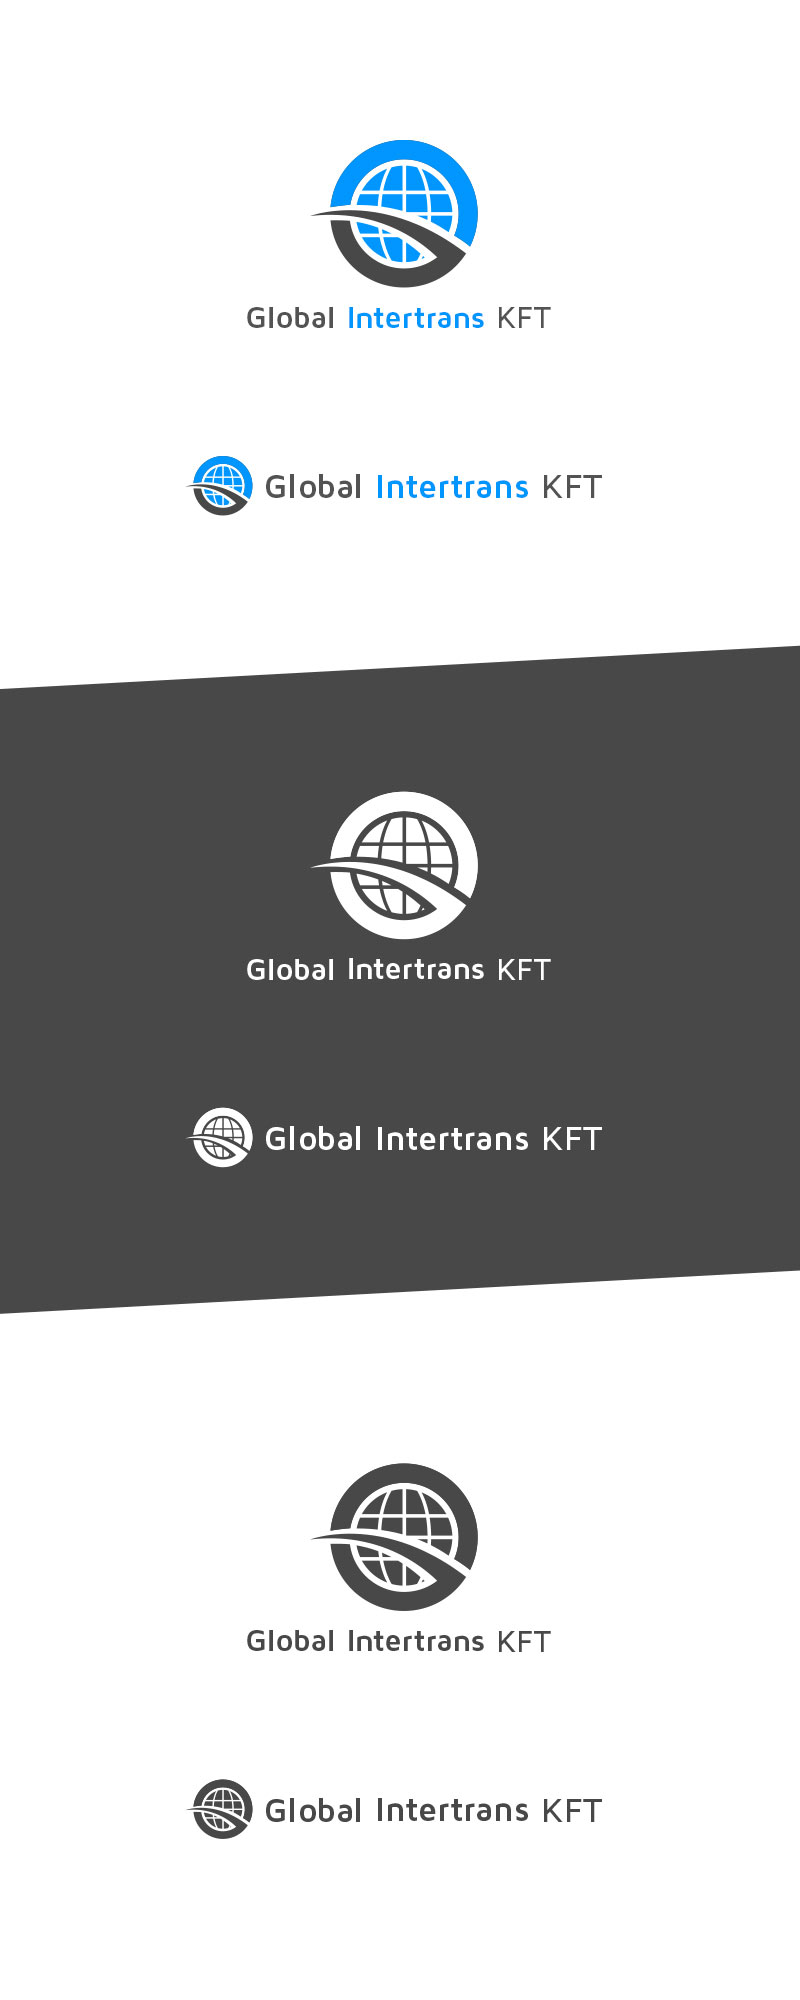 stargeckos_referencia_Global_intertrans_kft_logo_vegleges